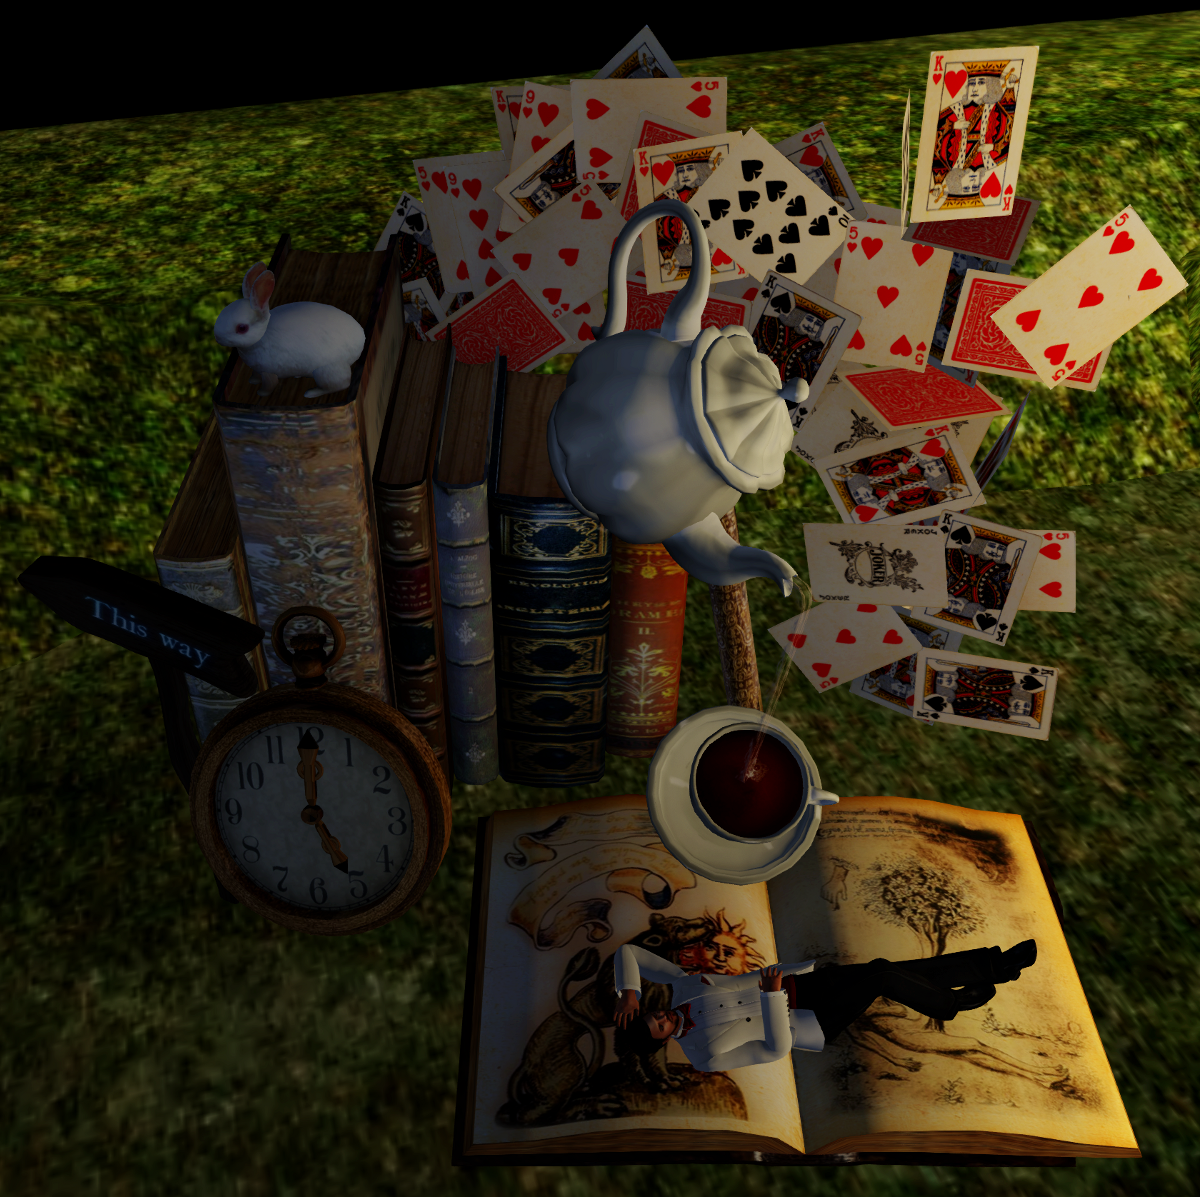 Enchanted Alice: books, tea, playing cards, pocket watches, white rabbits...